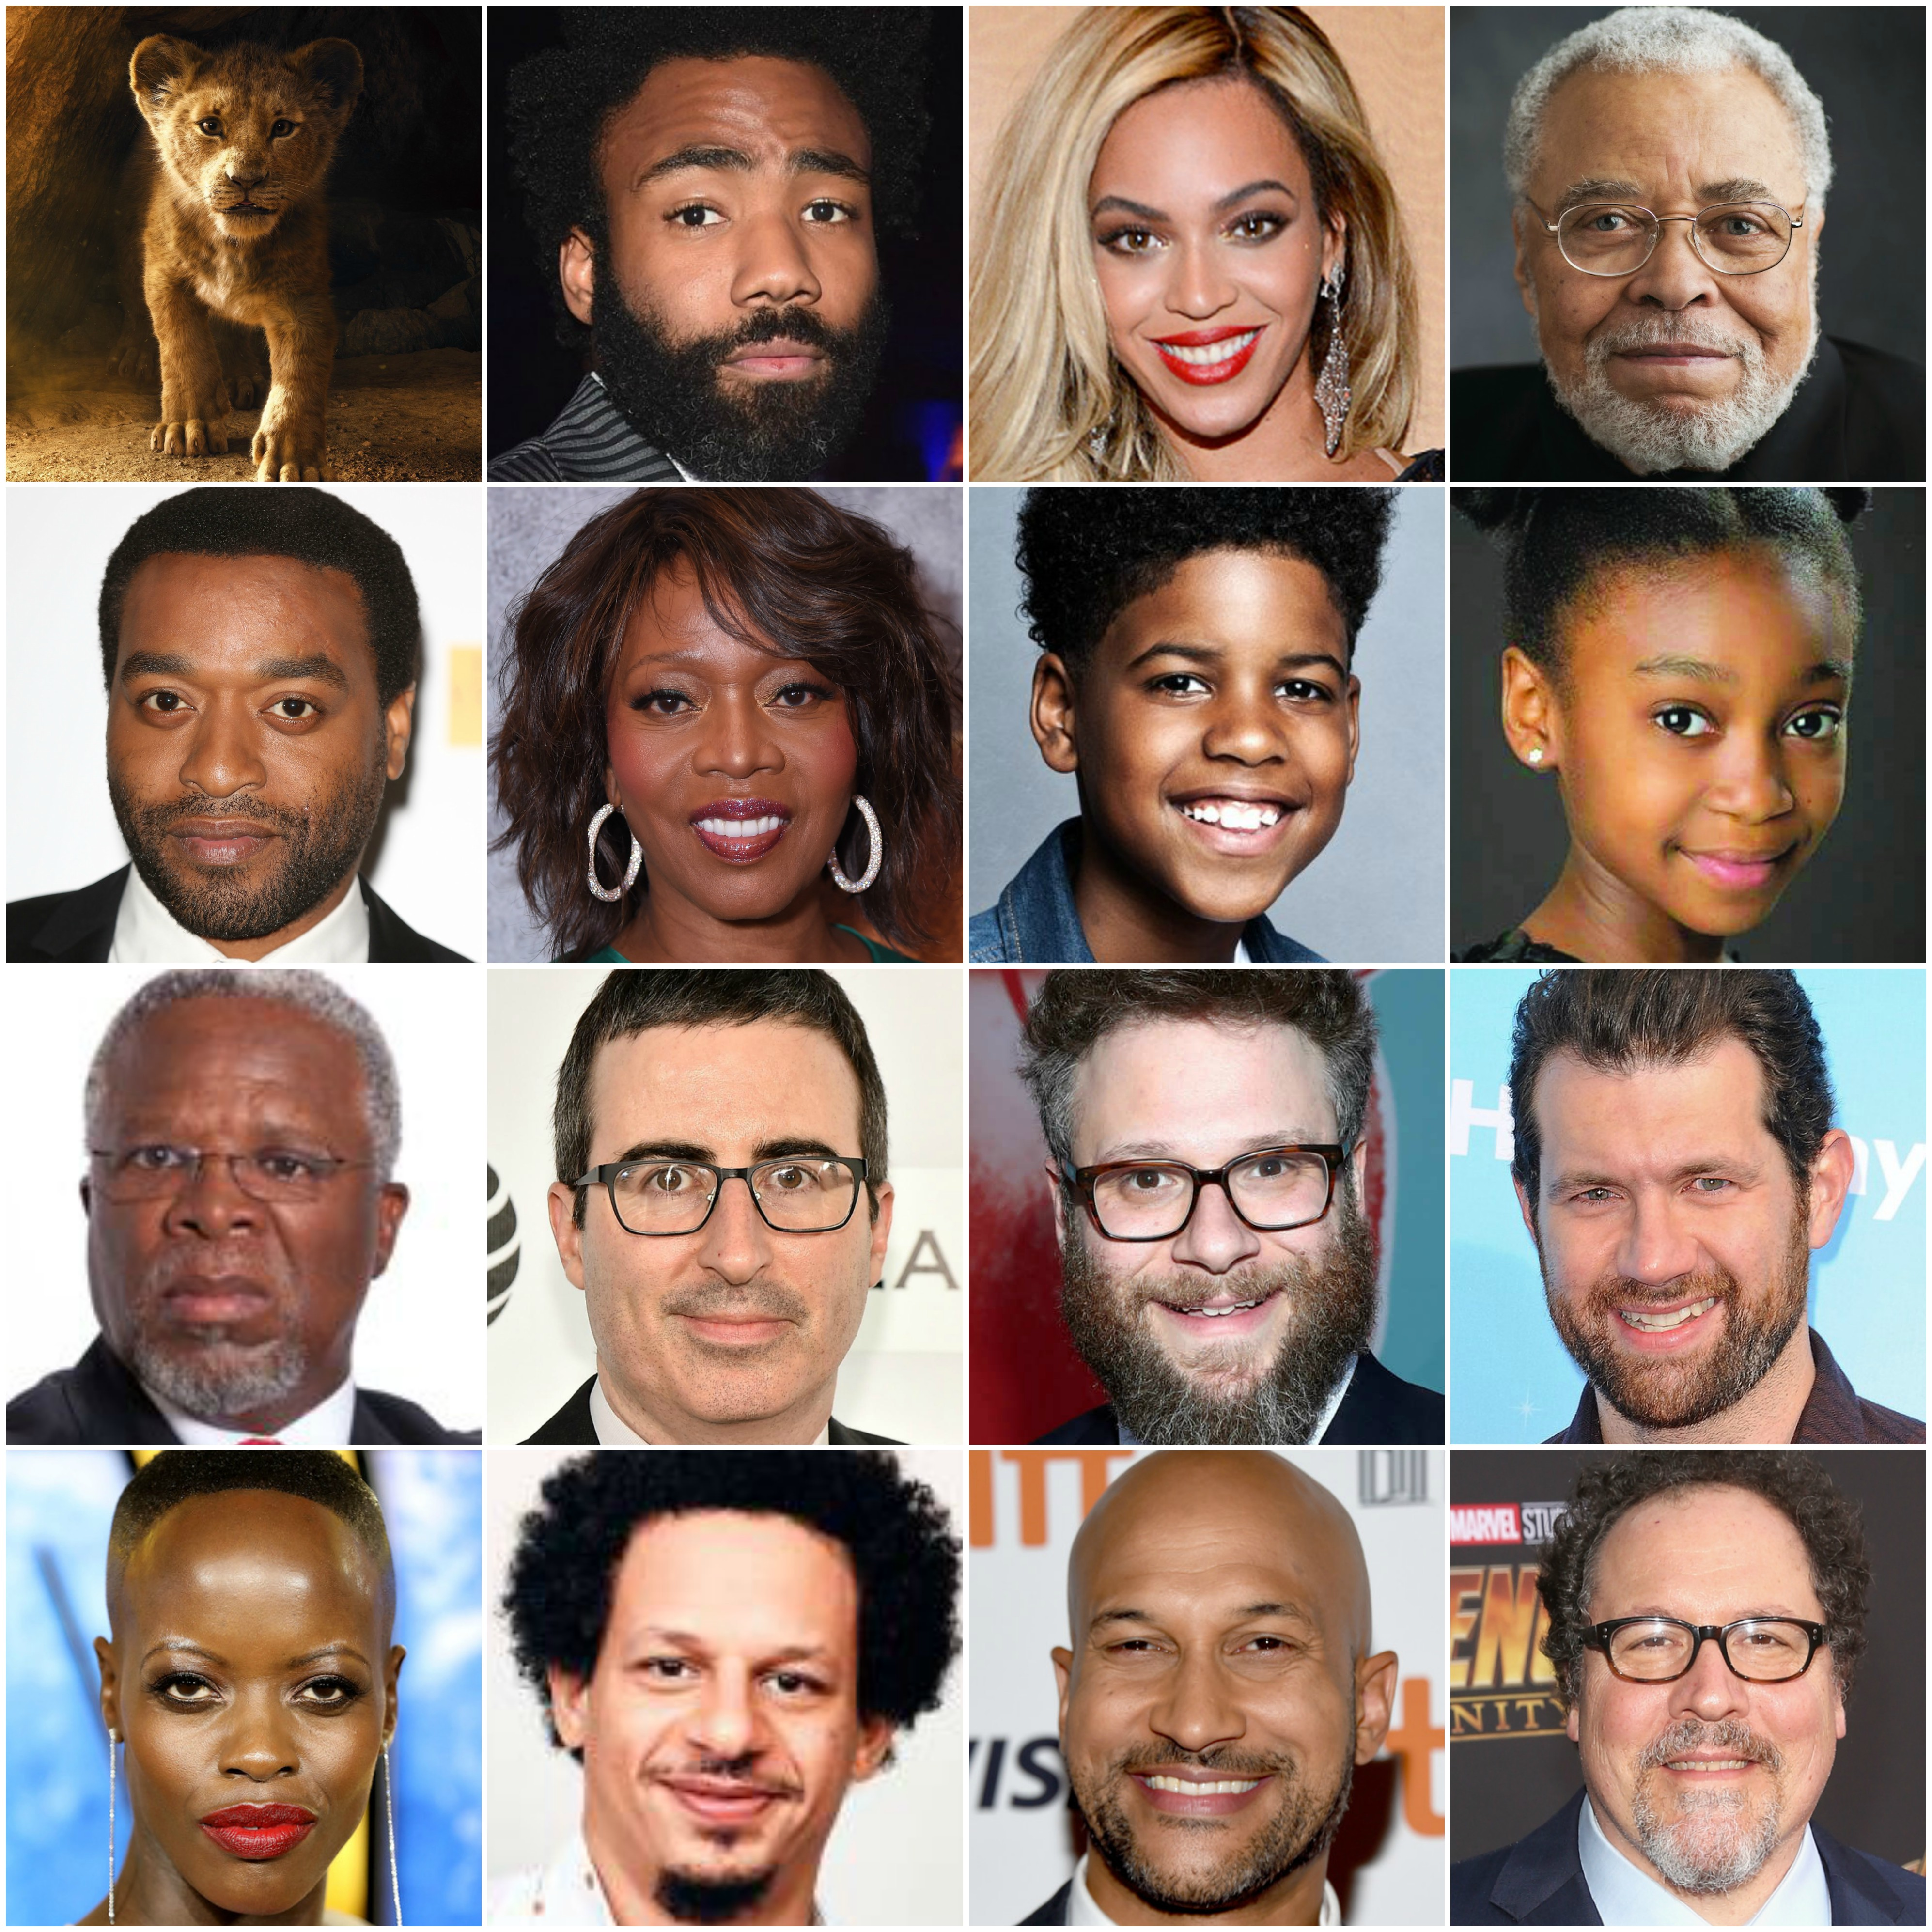 Check Out The Lion King New Images Of Film S Cast With Their Characters And New Featurette Blackfilm Com Black Movies Television And Theatre News